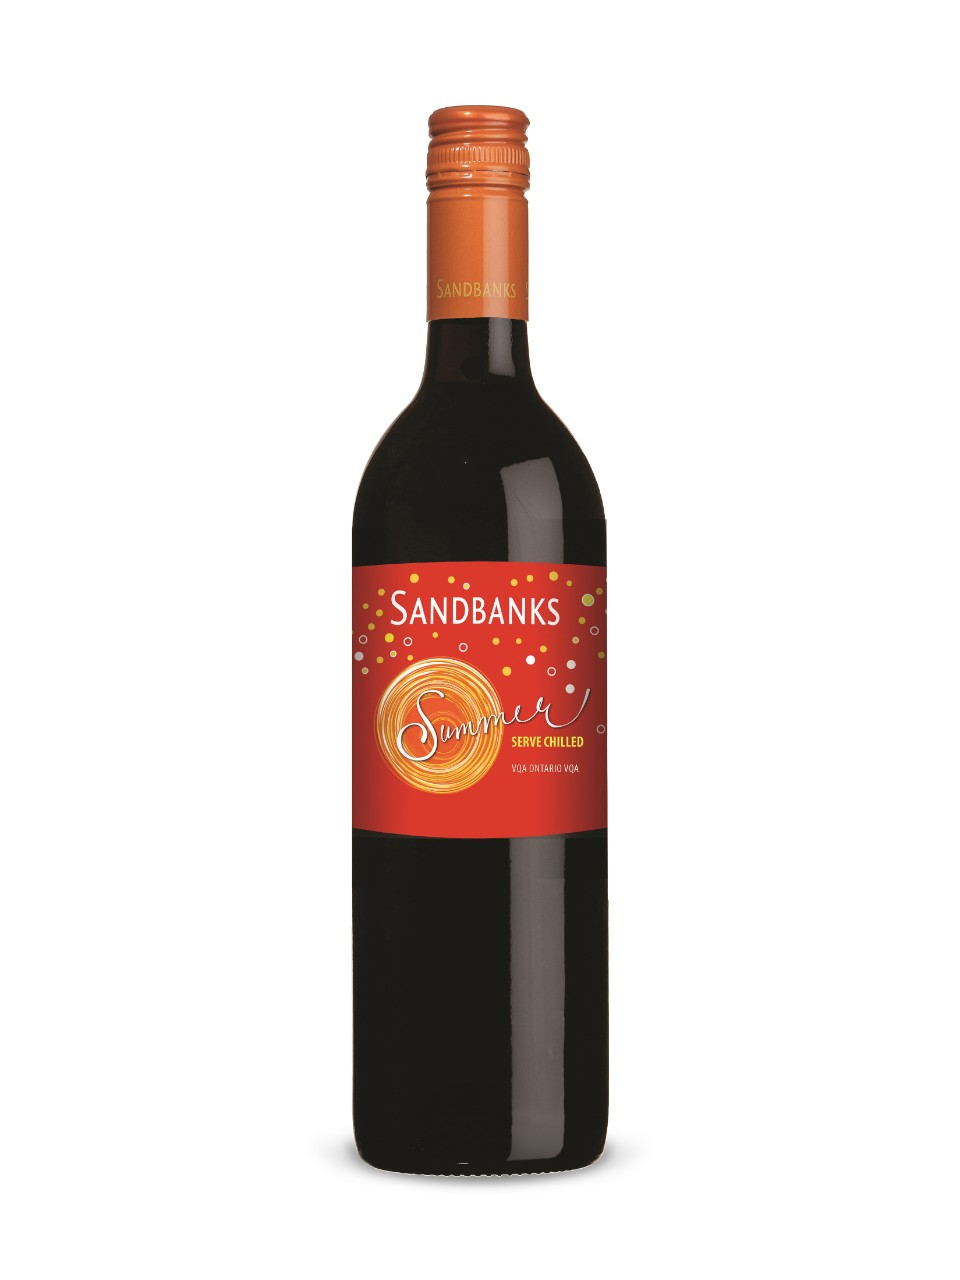 Summer Rouge VQA Sandbanks